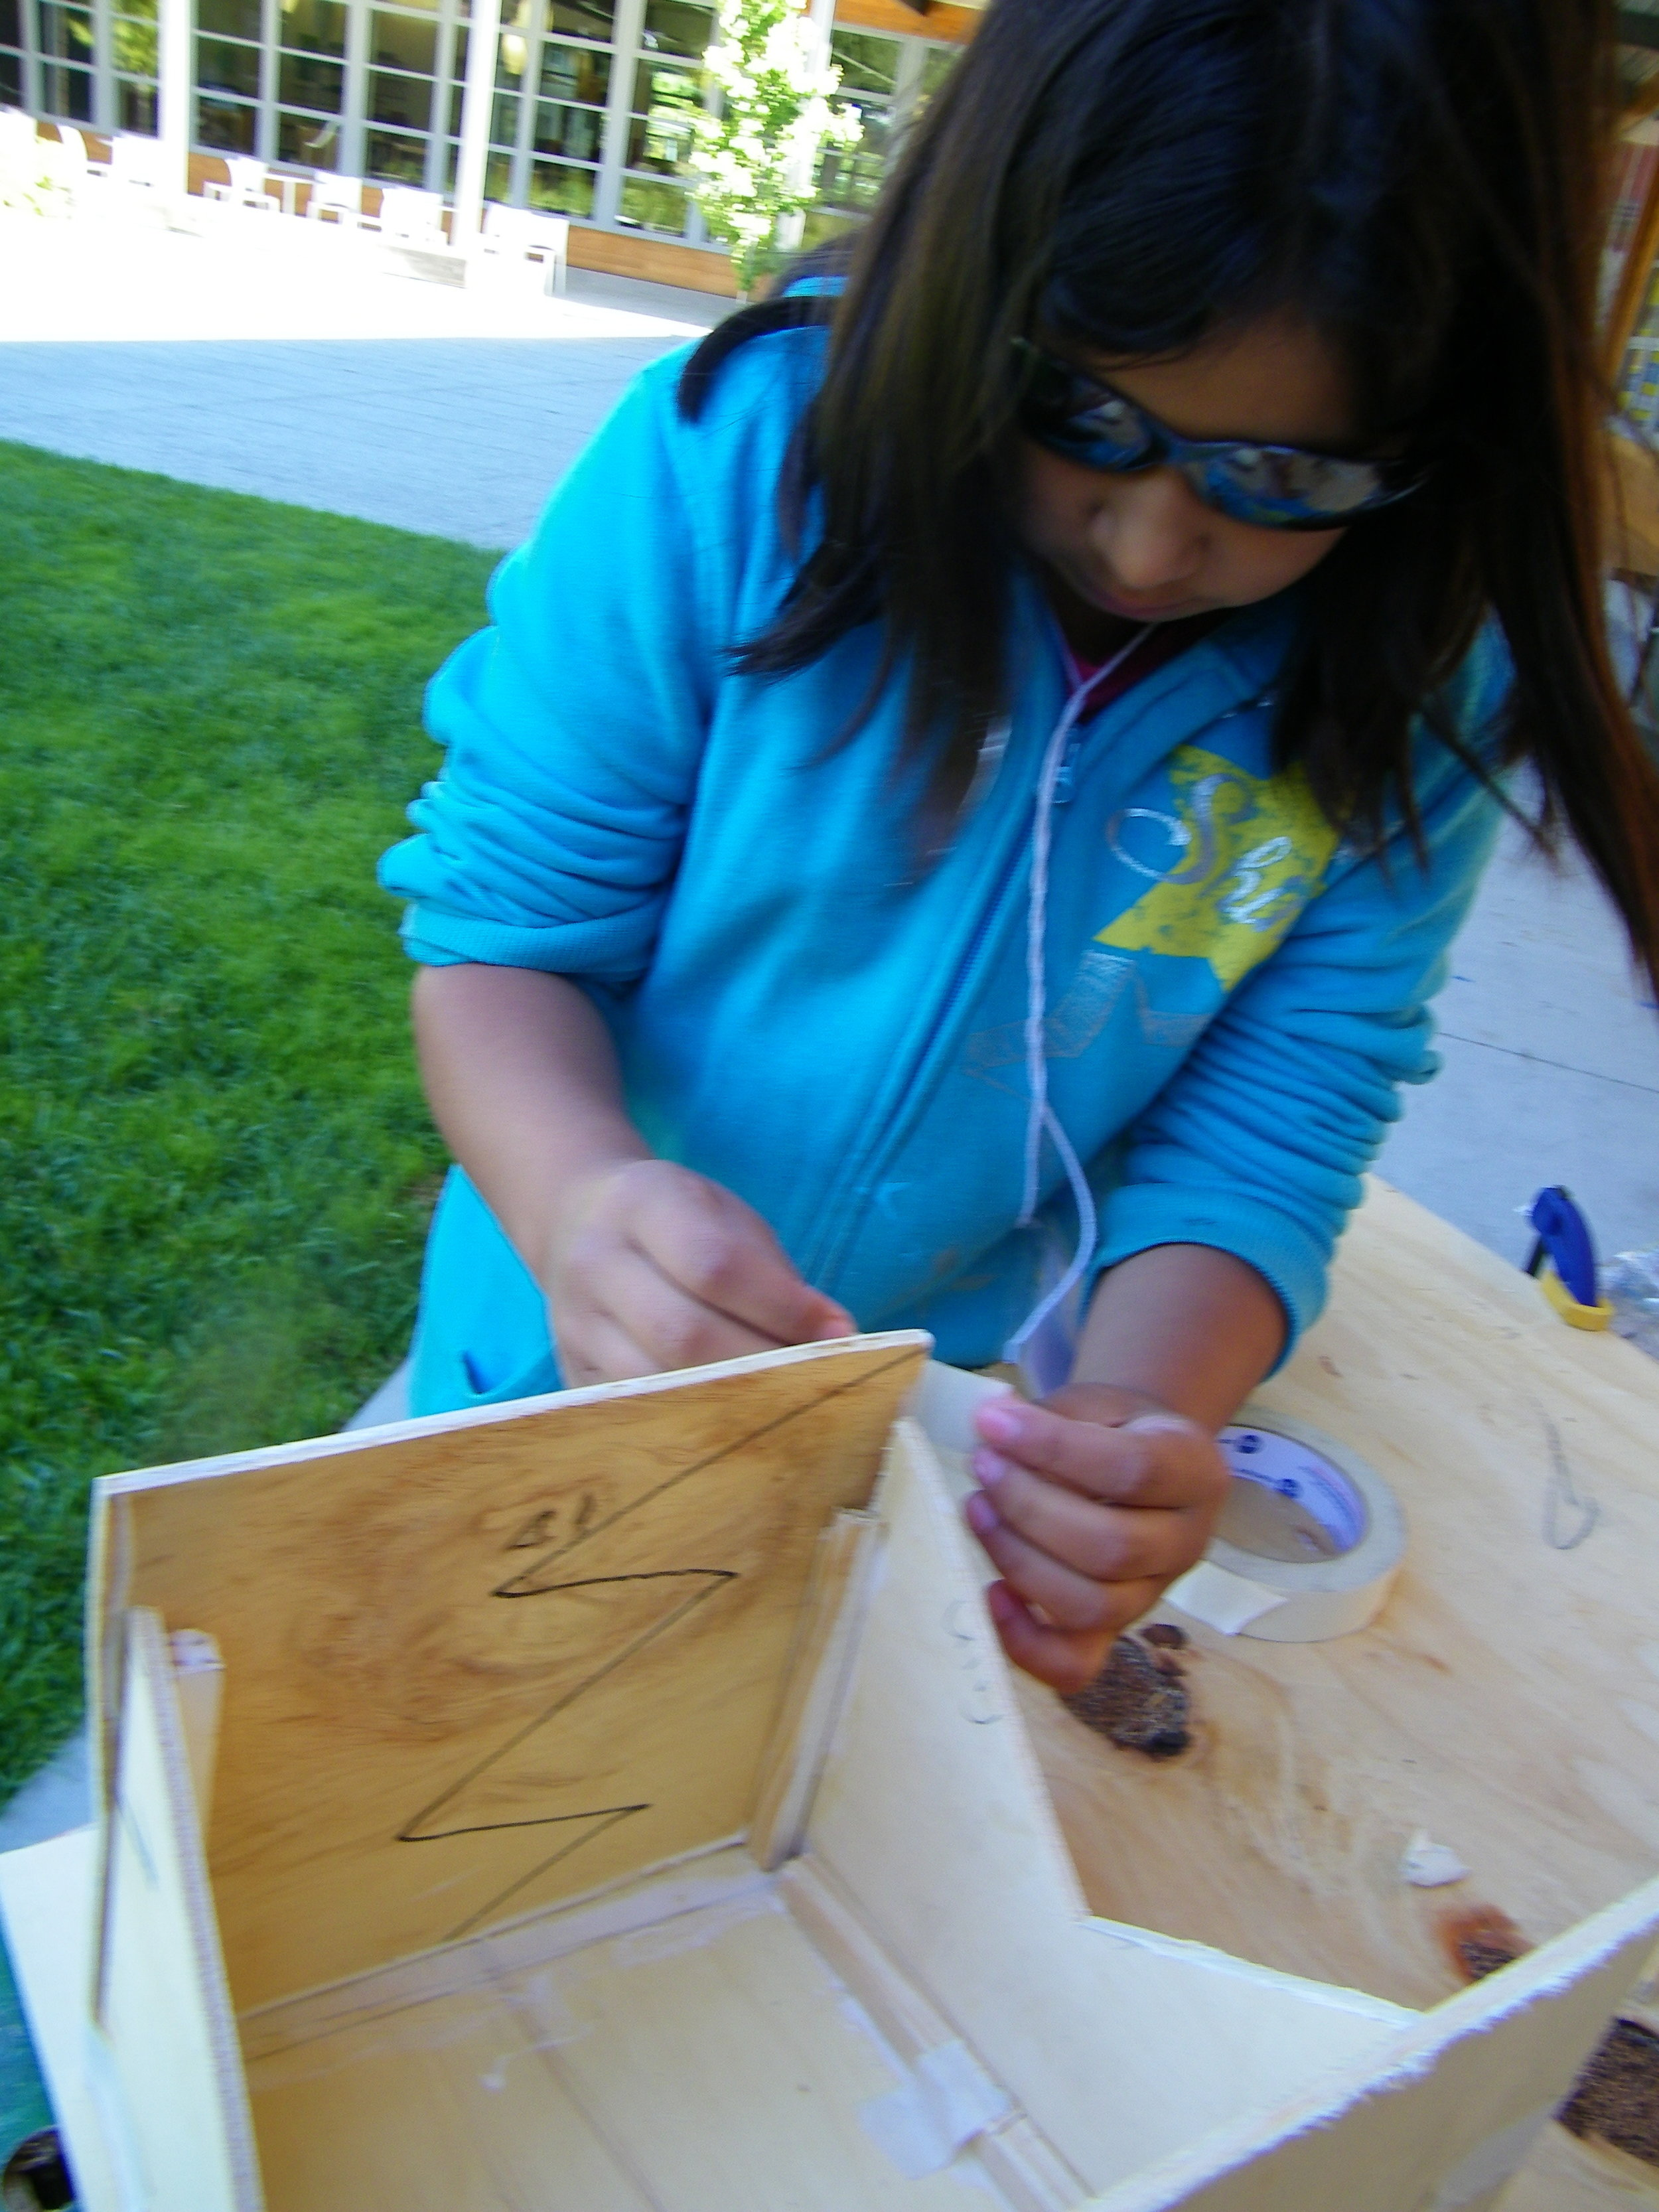 One student was determined to build a birdhouse that would bring many species to her garden.